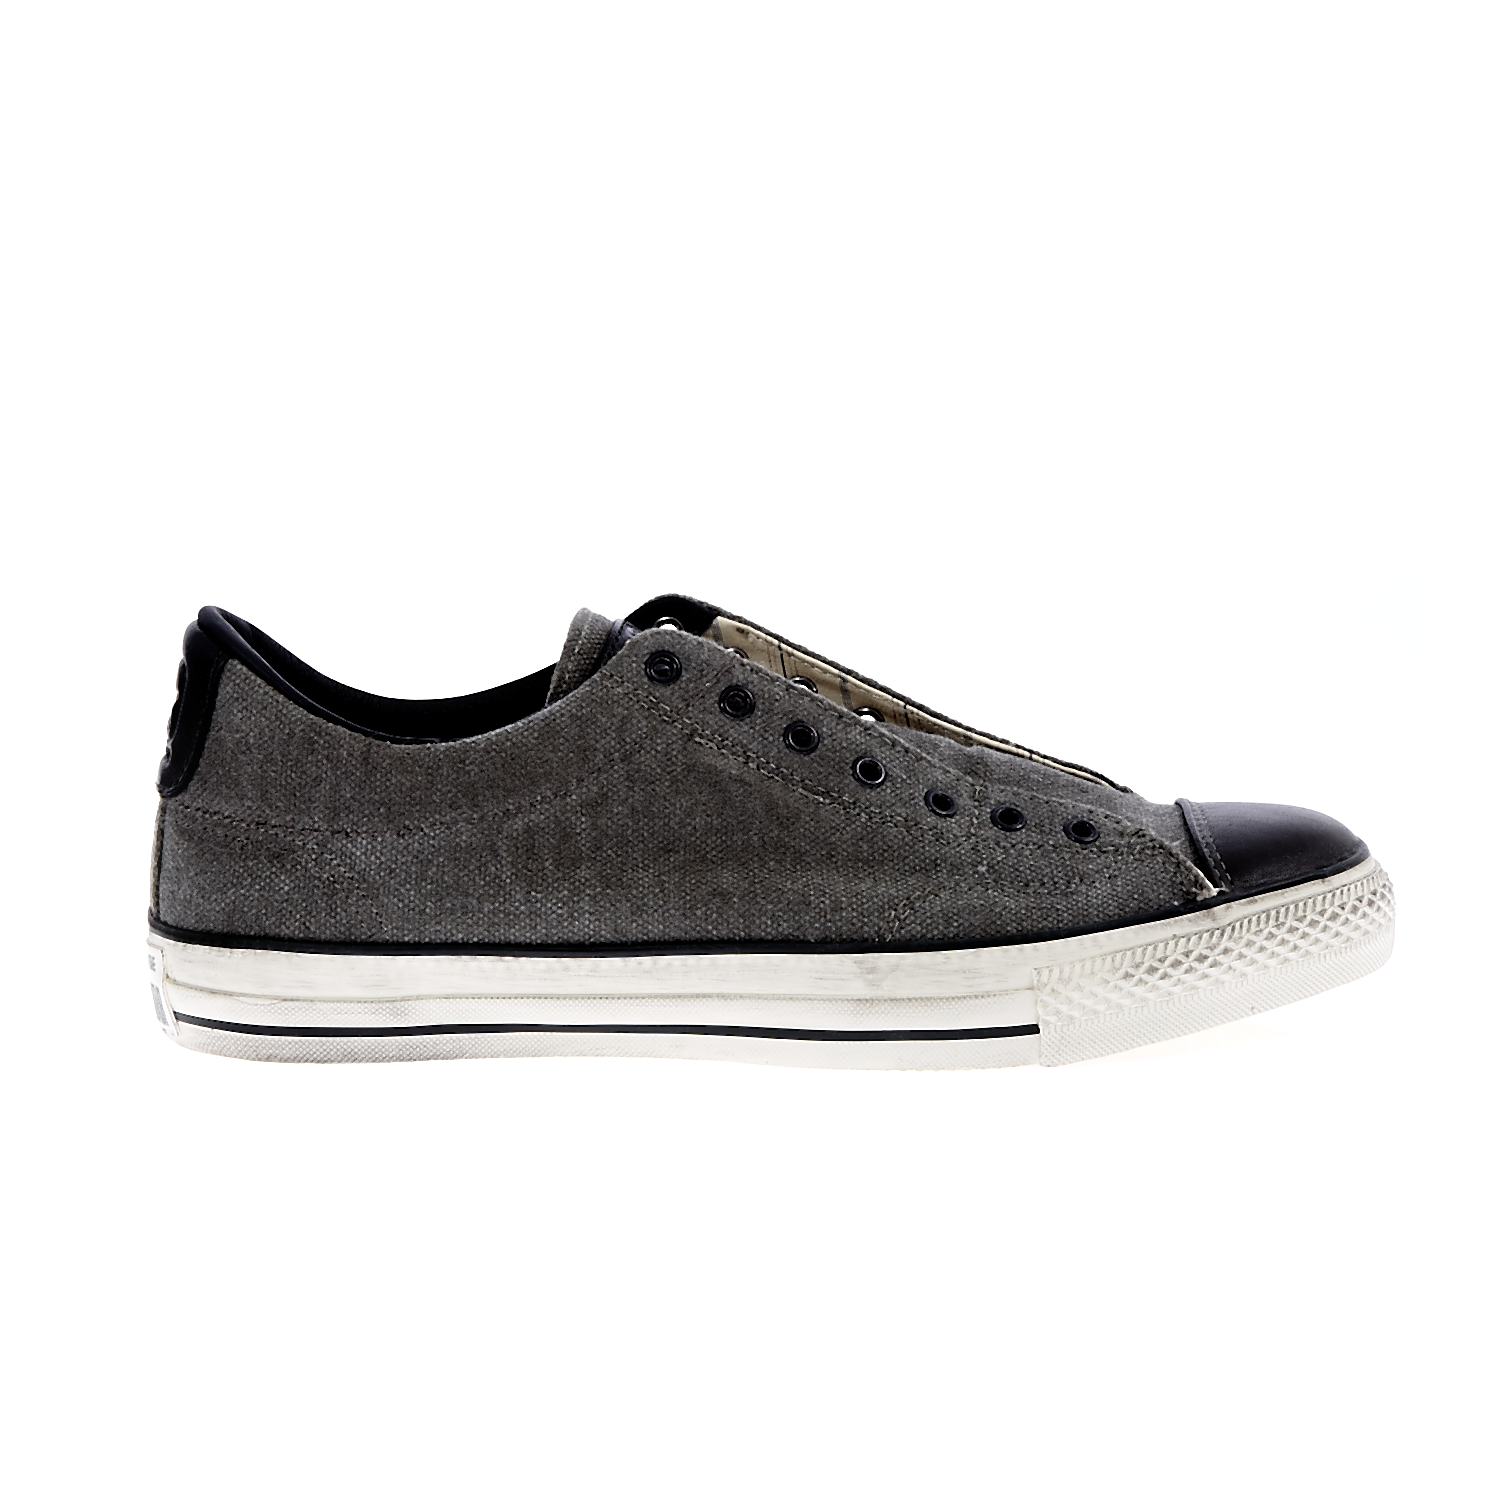 CONVERSE – Unisex παπούτσια Chuck Taylor All Star Vintage ανθρακί-μαύρα